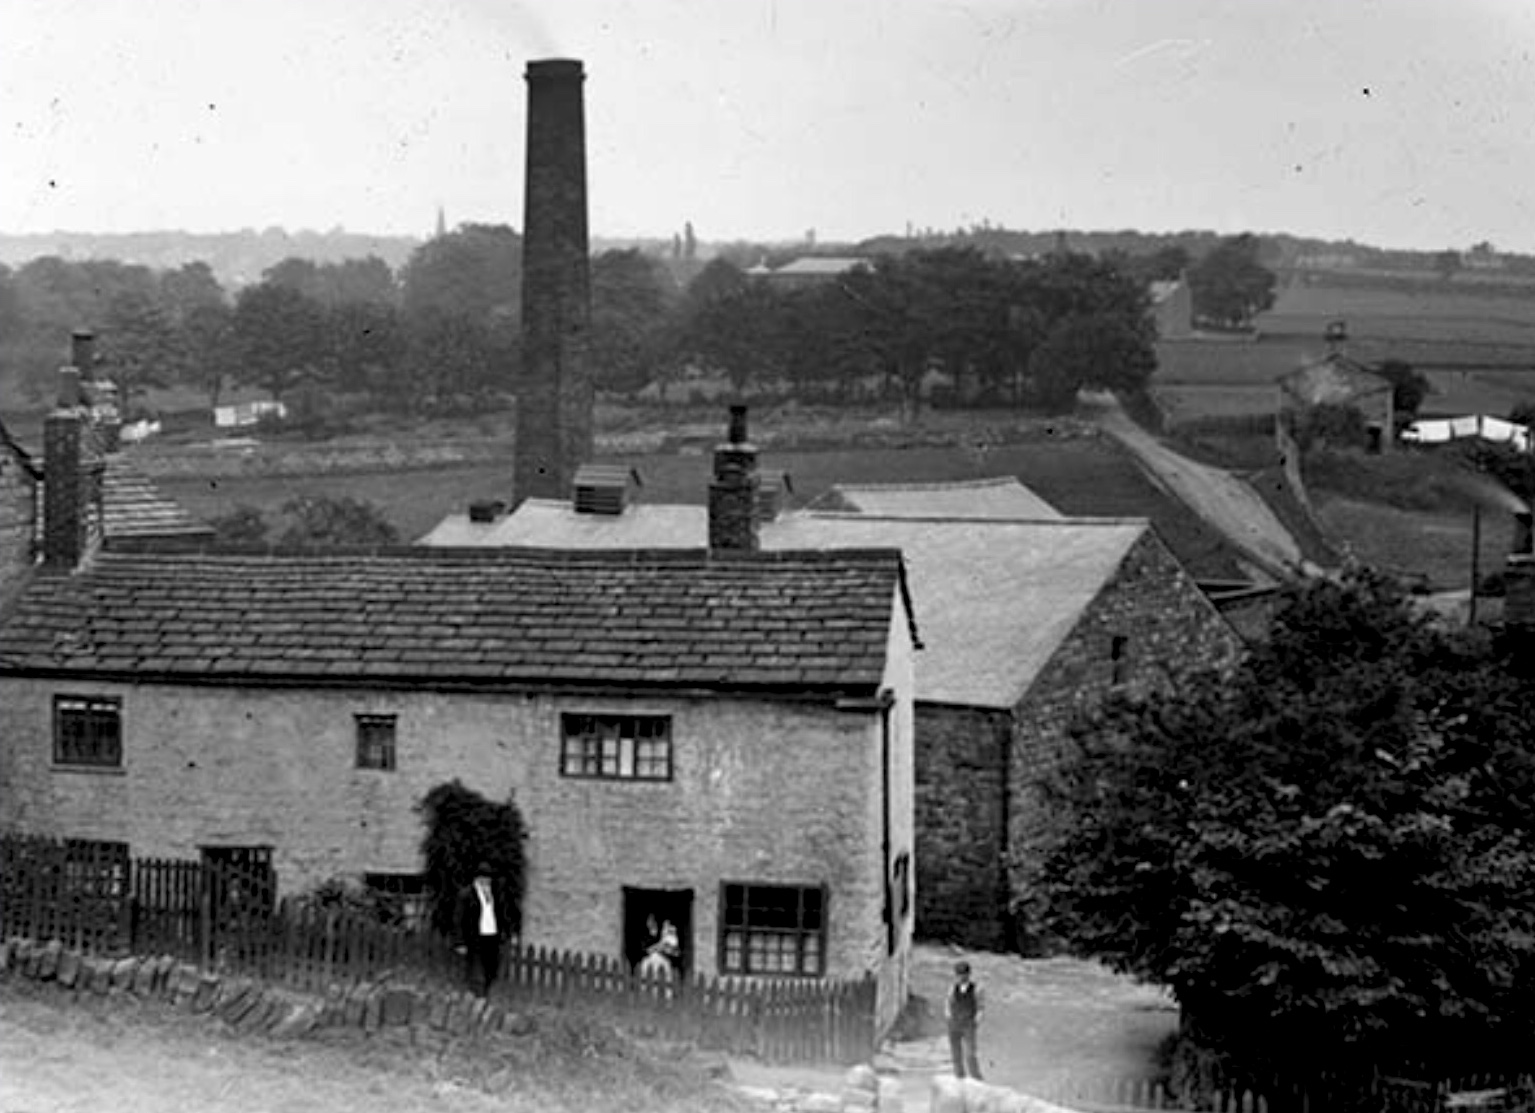 Woodland Dye Works [demolished], Meanwood Valley, circa 1890